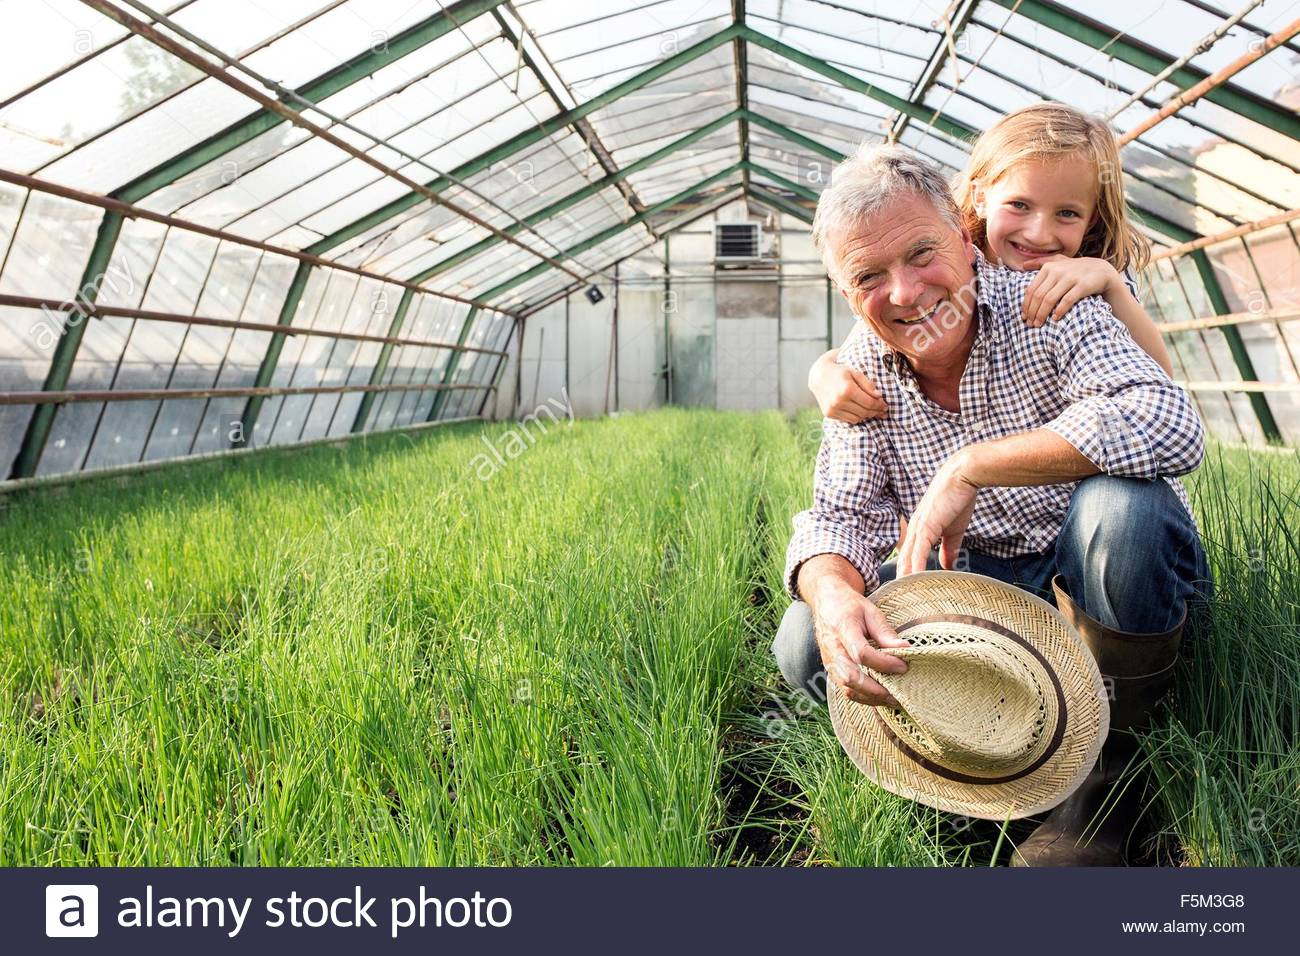 Granddaughter with hands on grandfather shoulders in hothouse full of chives, looking at camera smiling - Stock Image